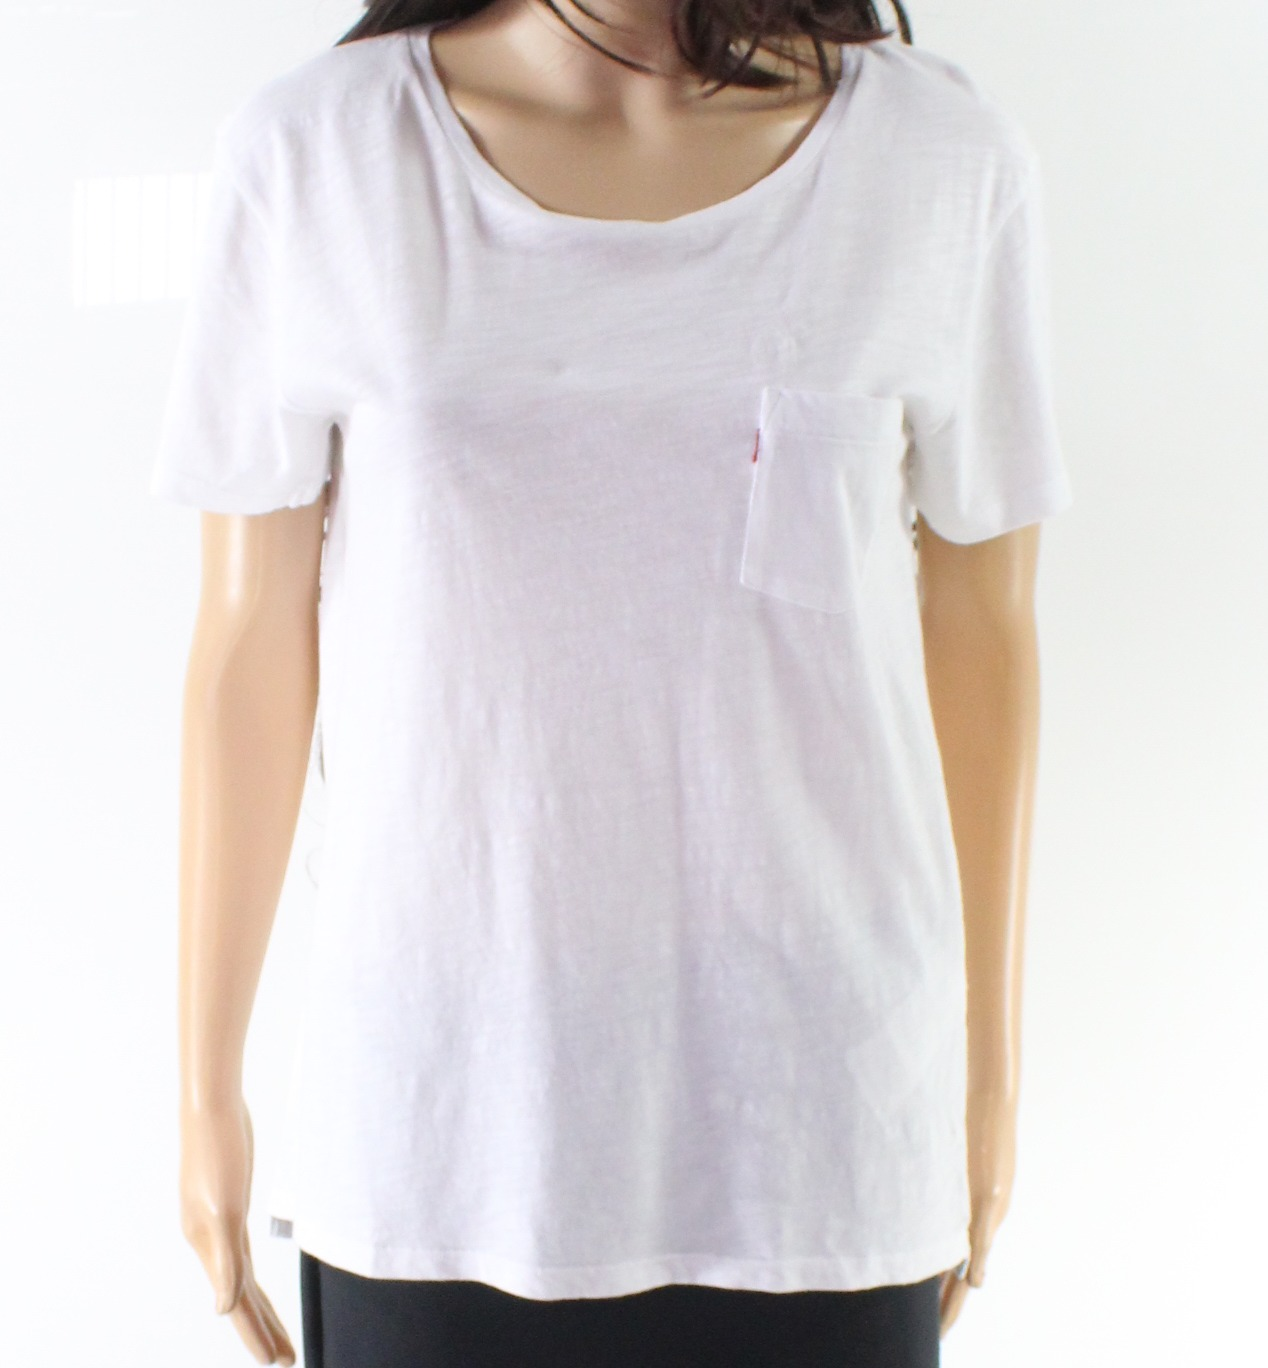 New-Levi-039-s-NEW-White-Women-039-s-Size-XL-Front-Pocket-Scoop-Neck-Knit-Top-32-608